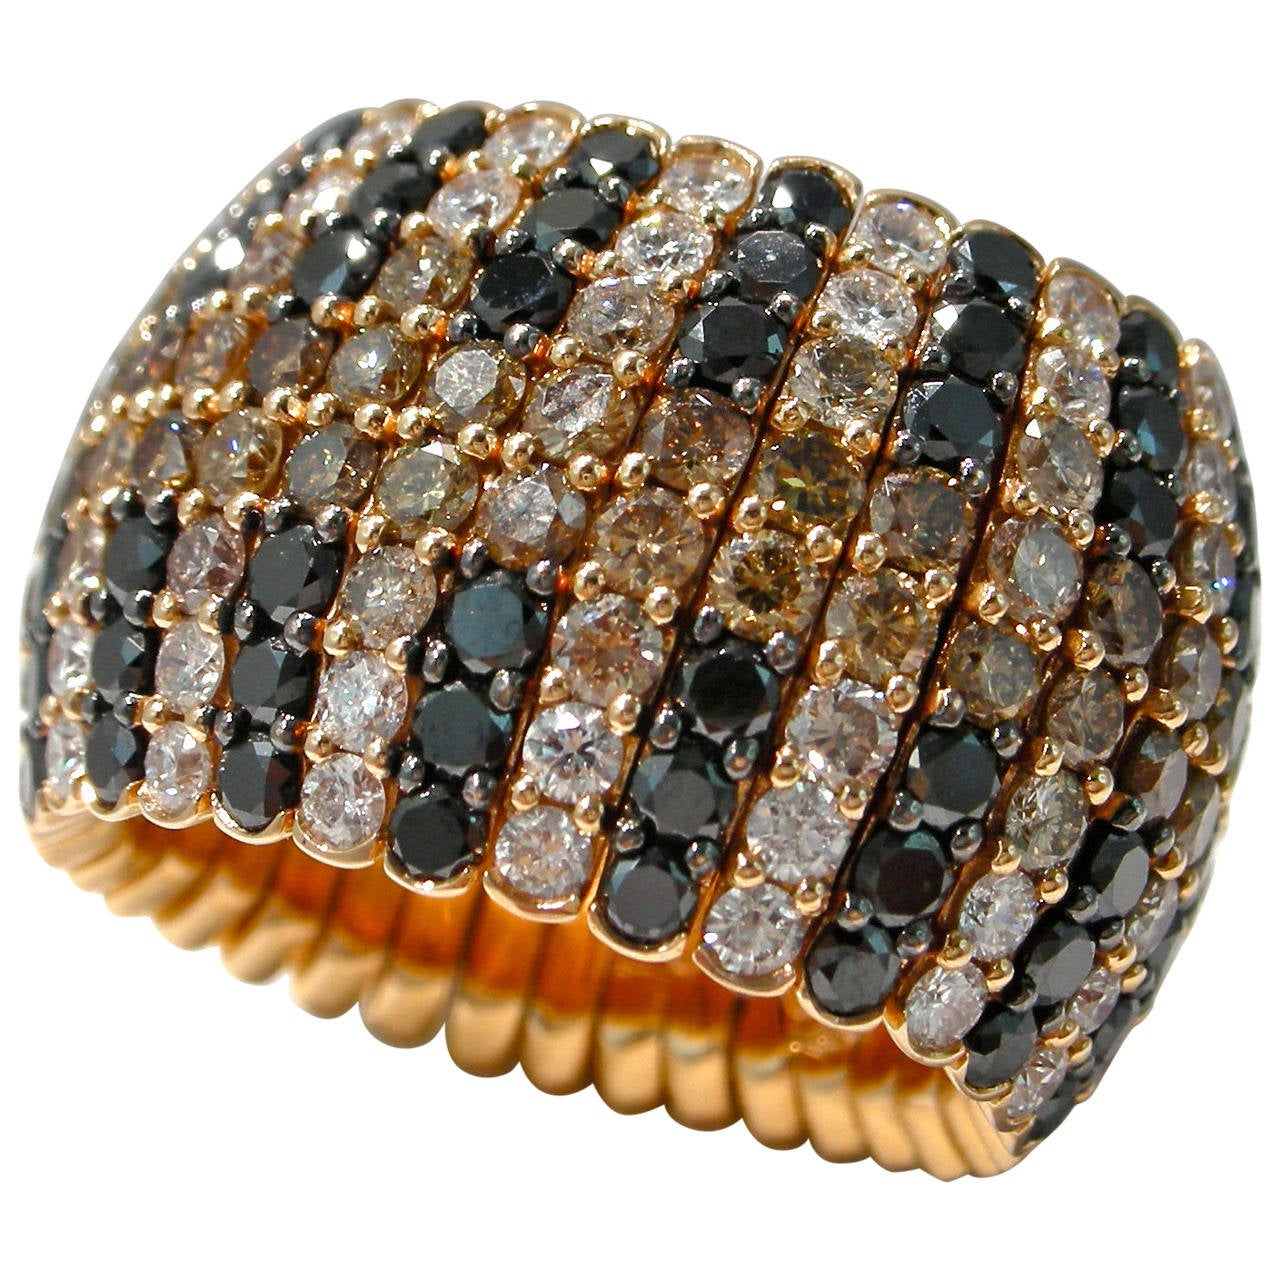 Jona Black Brown and White Diamond 18k Rose Gold Flexible Band Ring